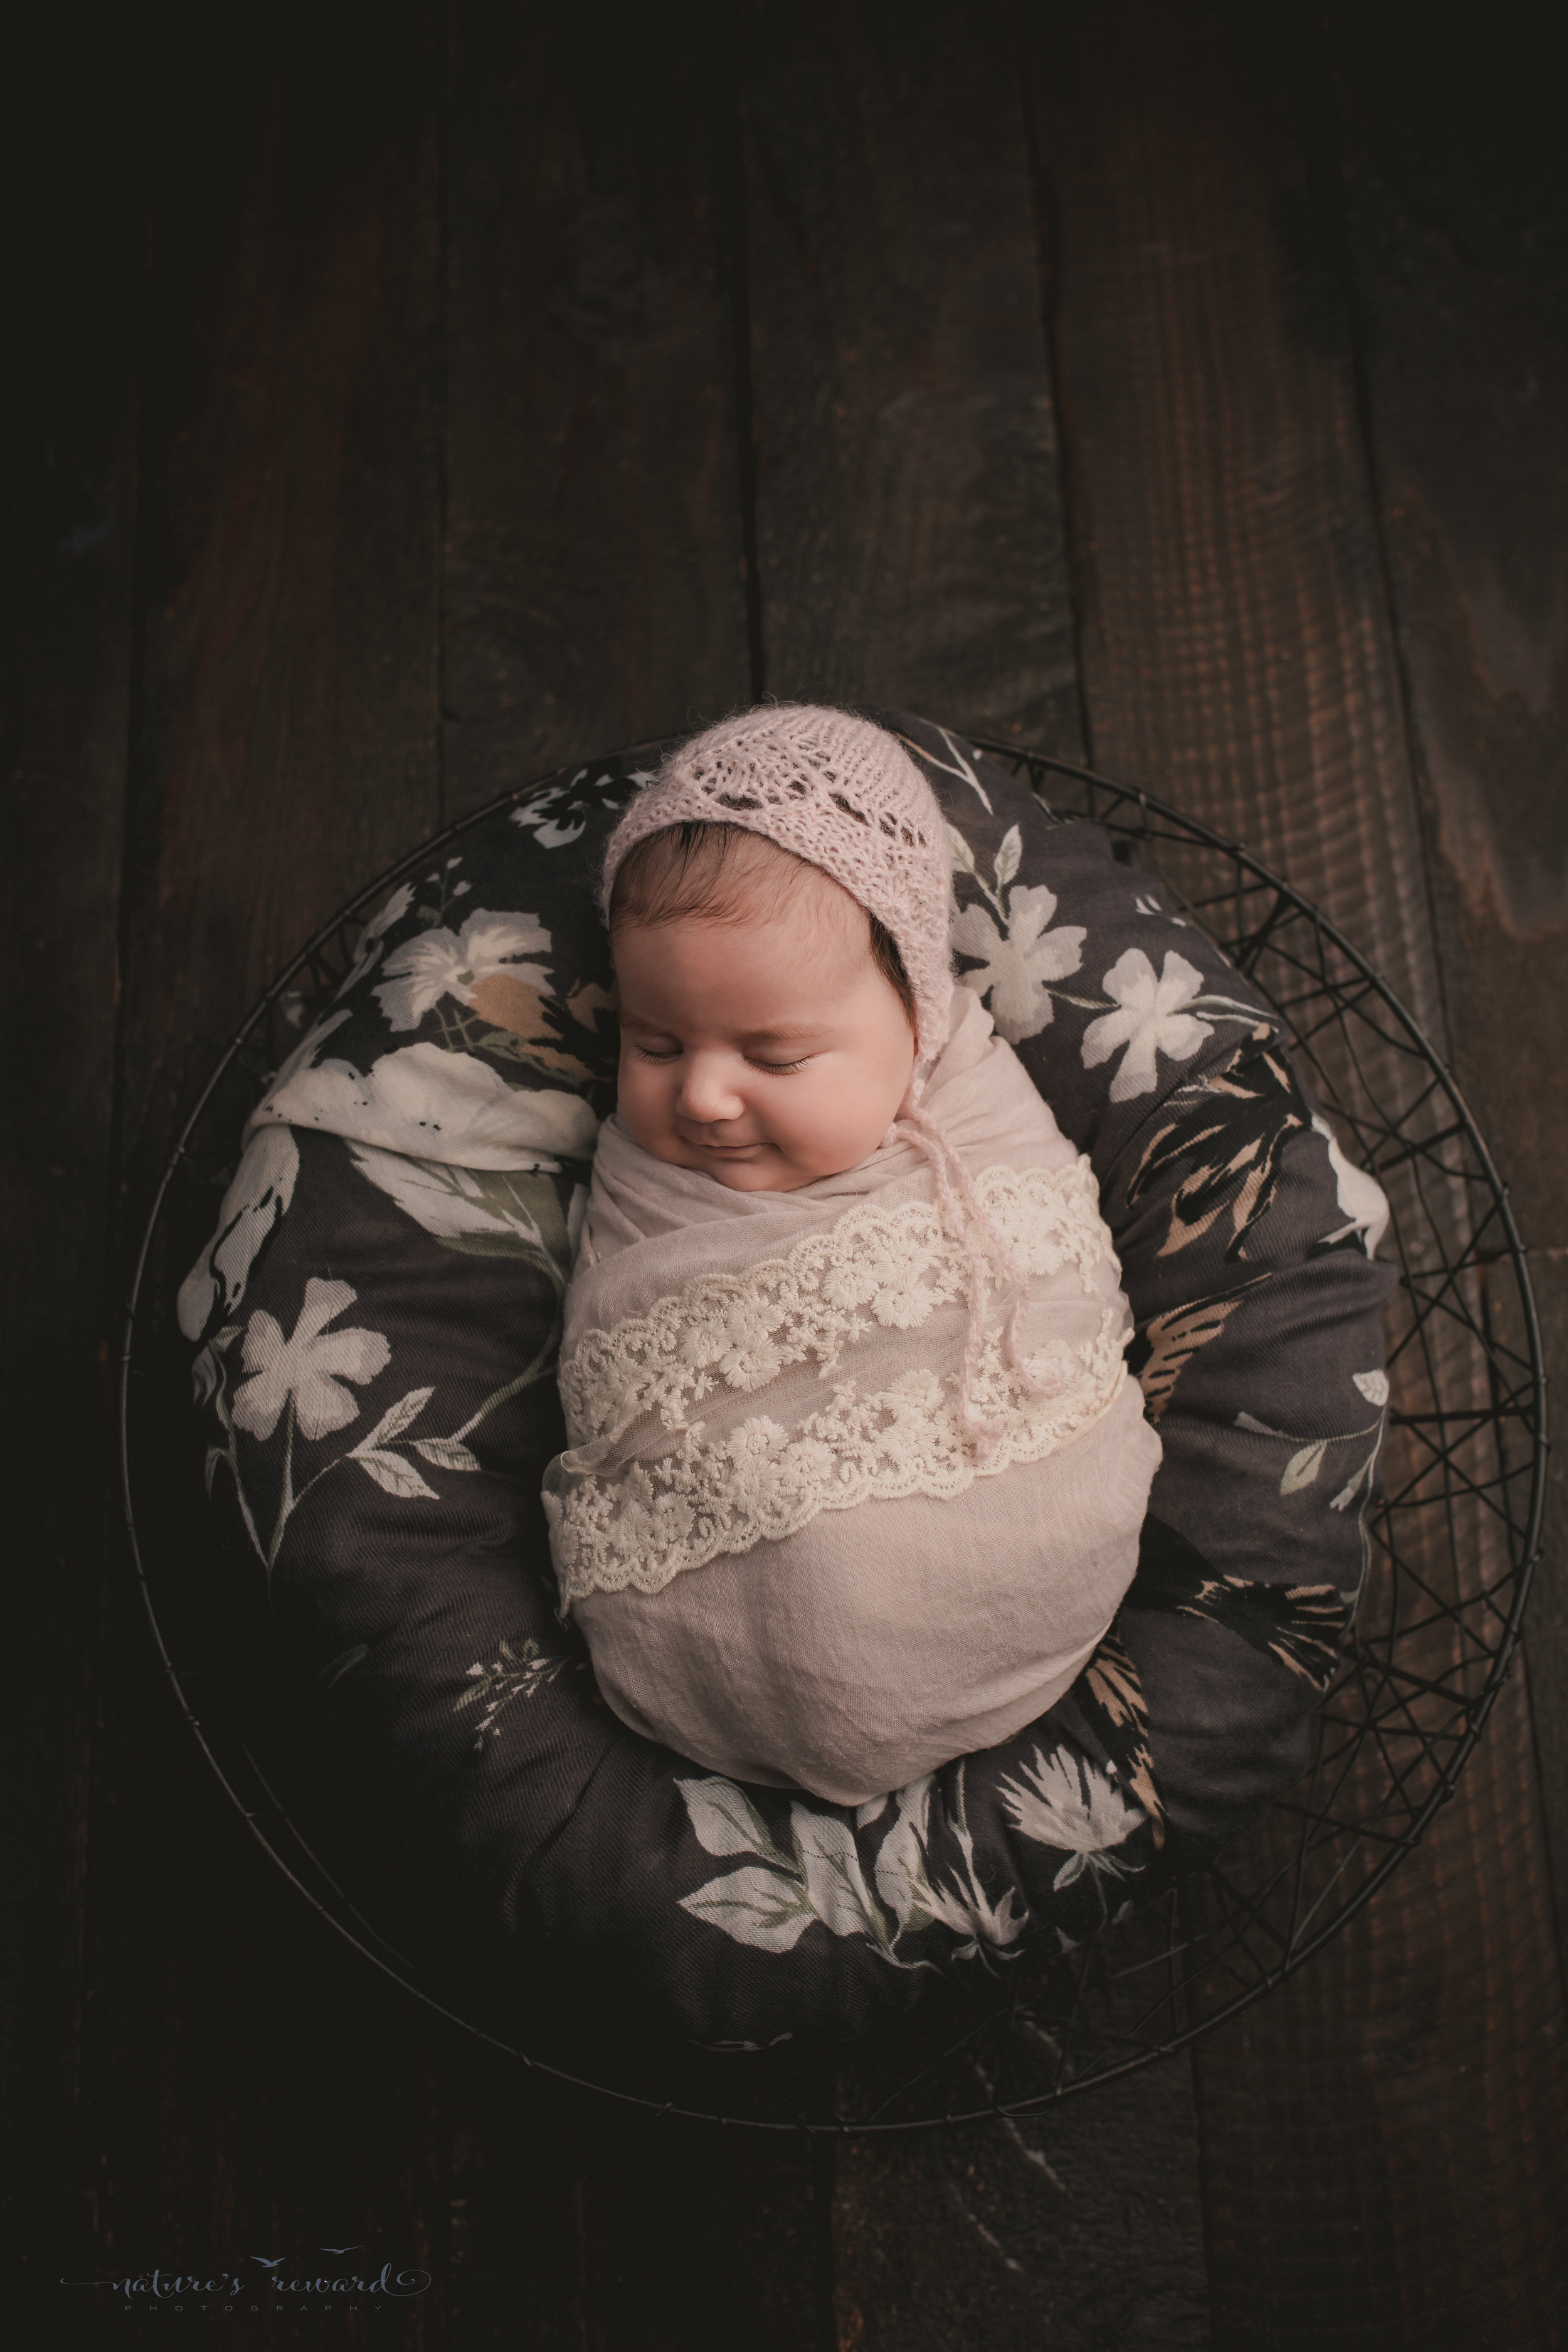 Dreaming, swaddled in lace and laying on grey floral on a wood floor, a newborn portrait by Nature's Reward Photography